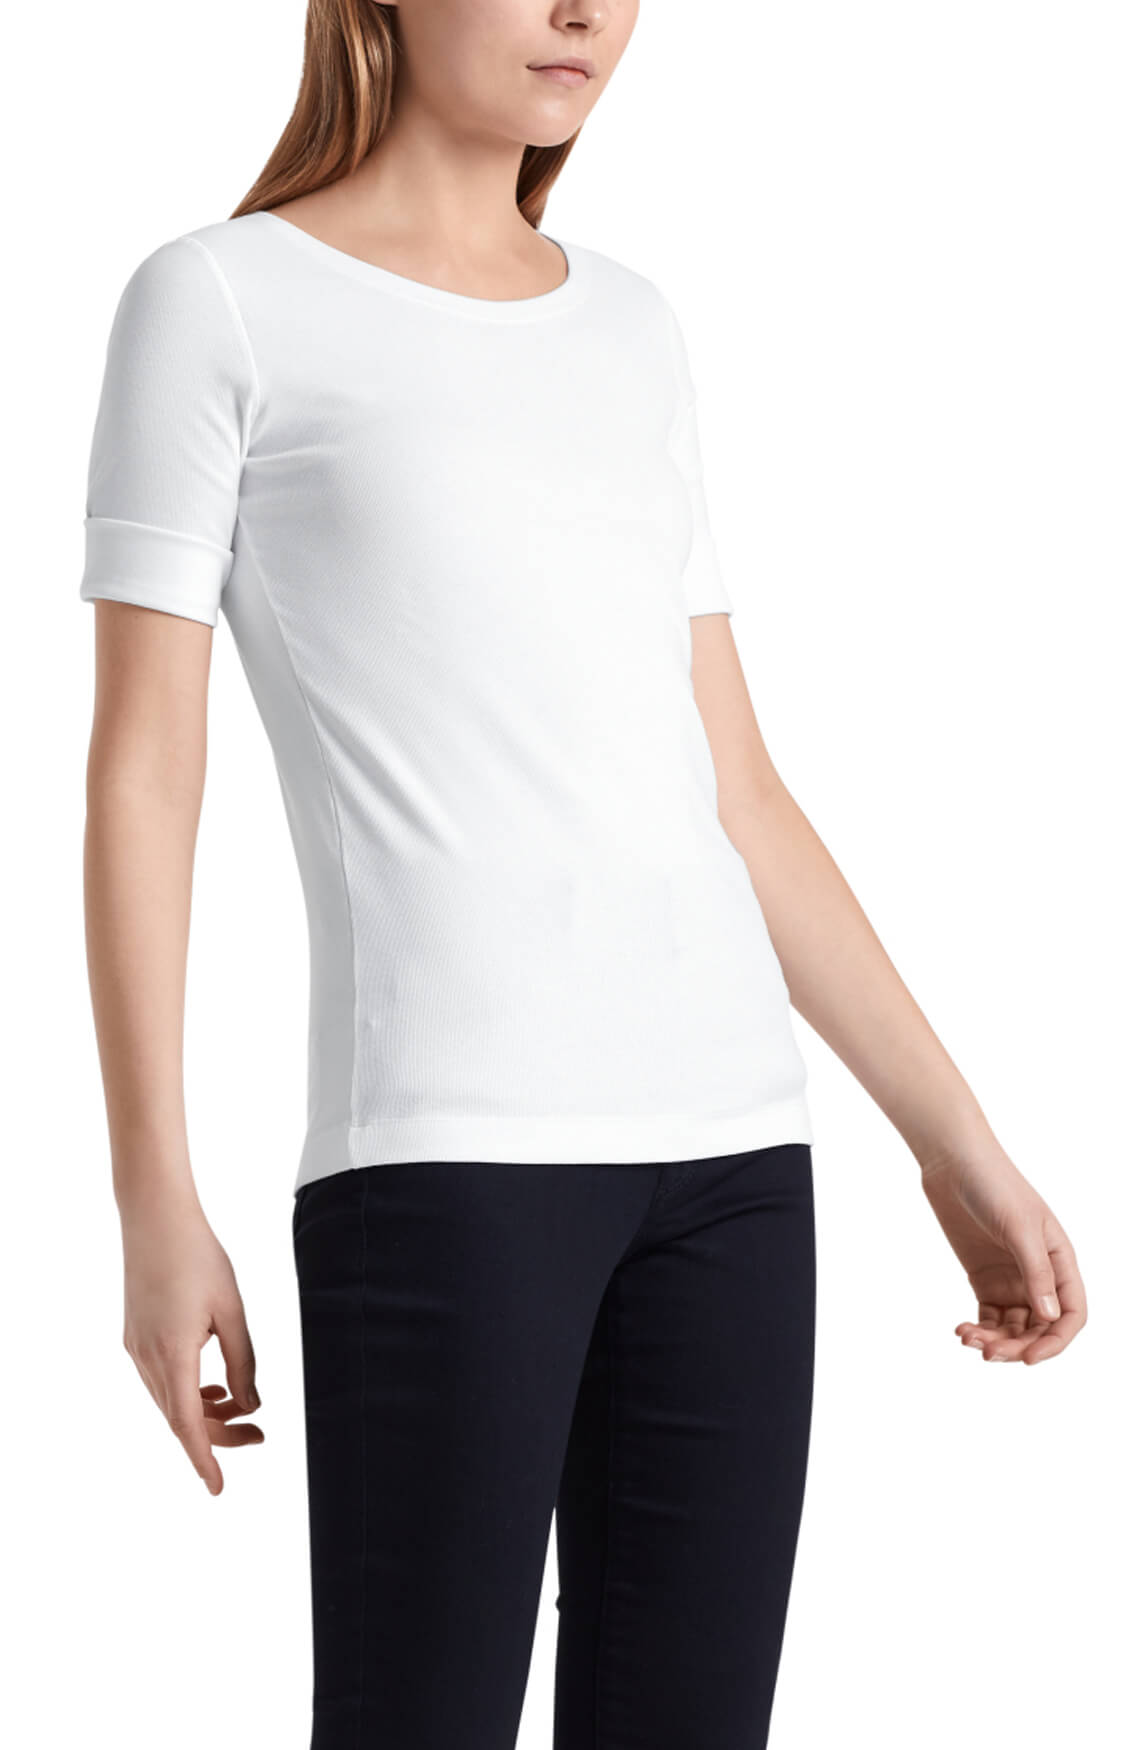 Marccain Sports Dames Shirt Wit